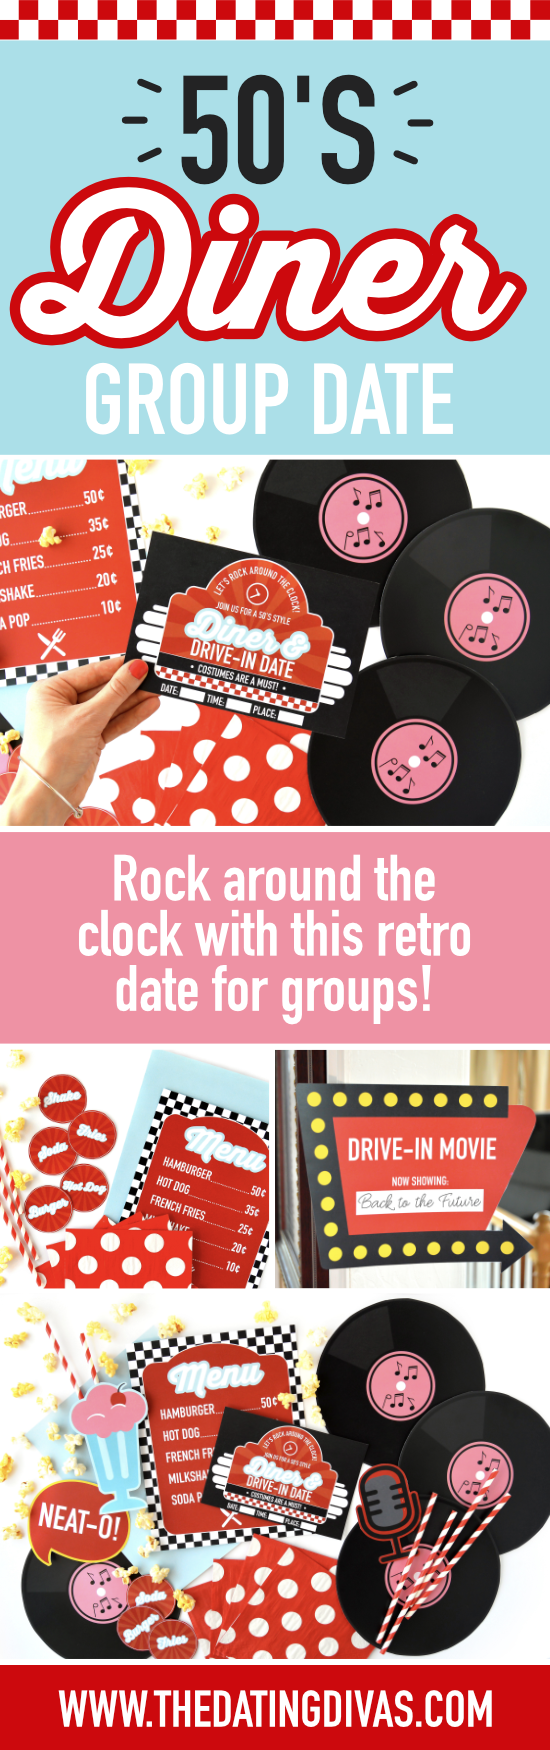 I LOVE all things 50's style! Can't wait to do these date night ideas! #thedatingdivas #50s #50stheme